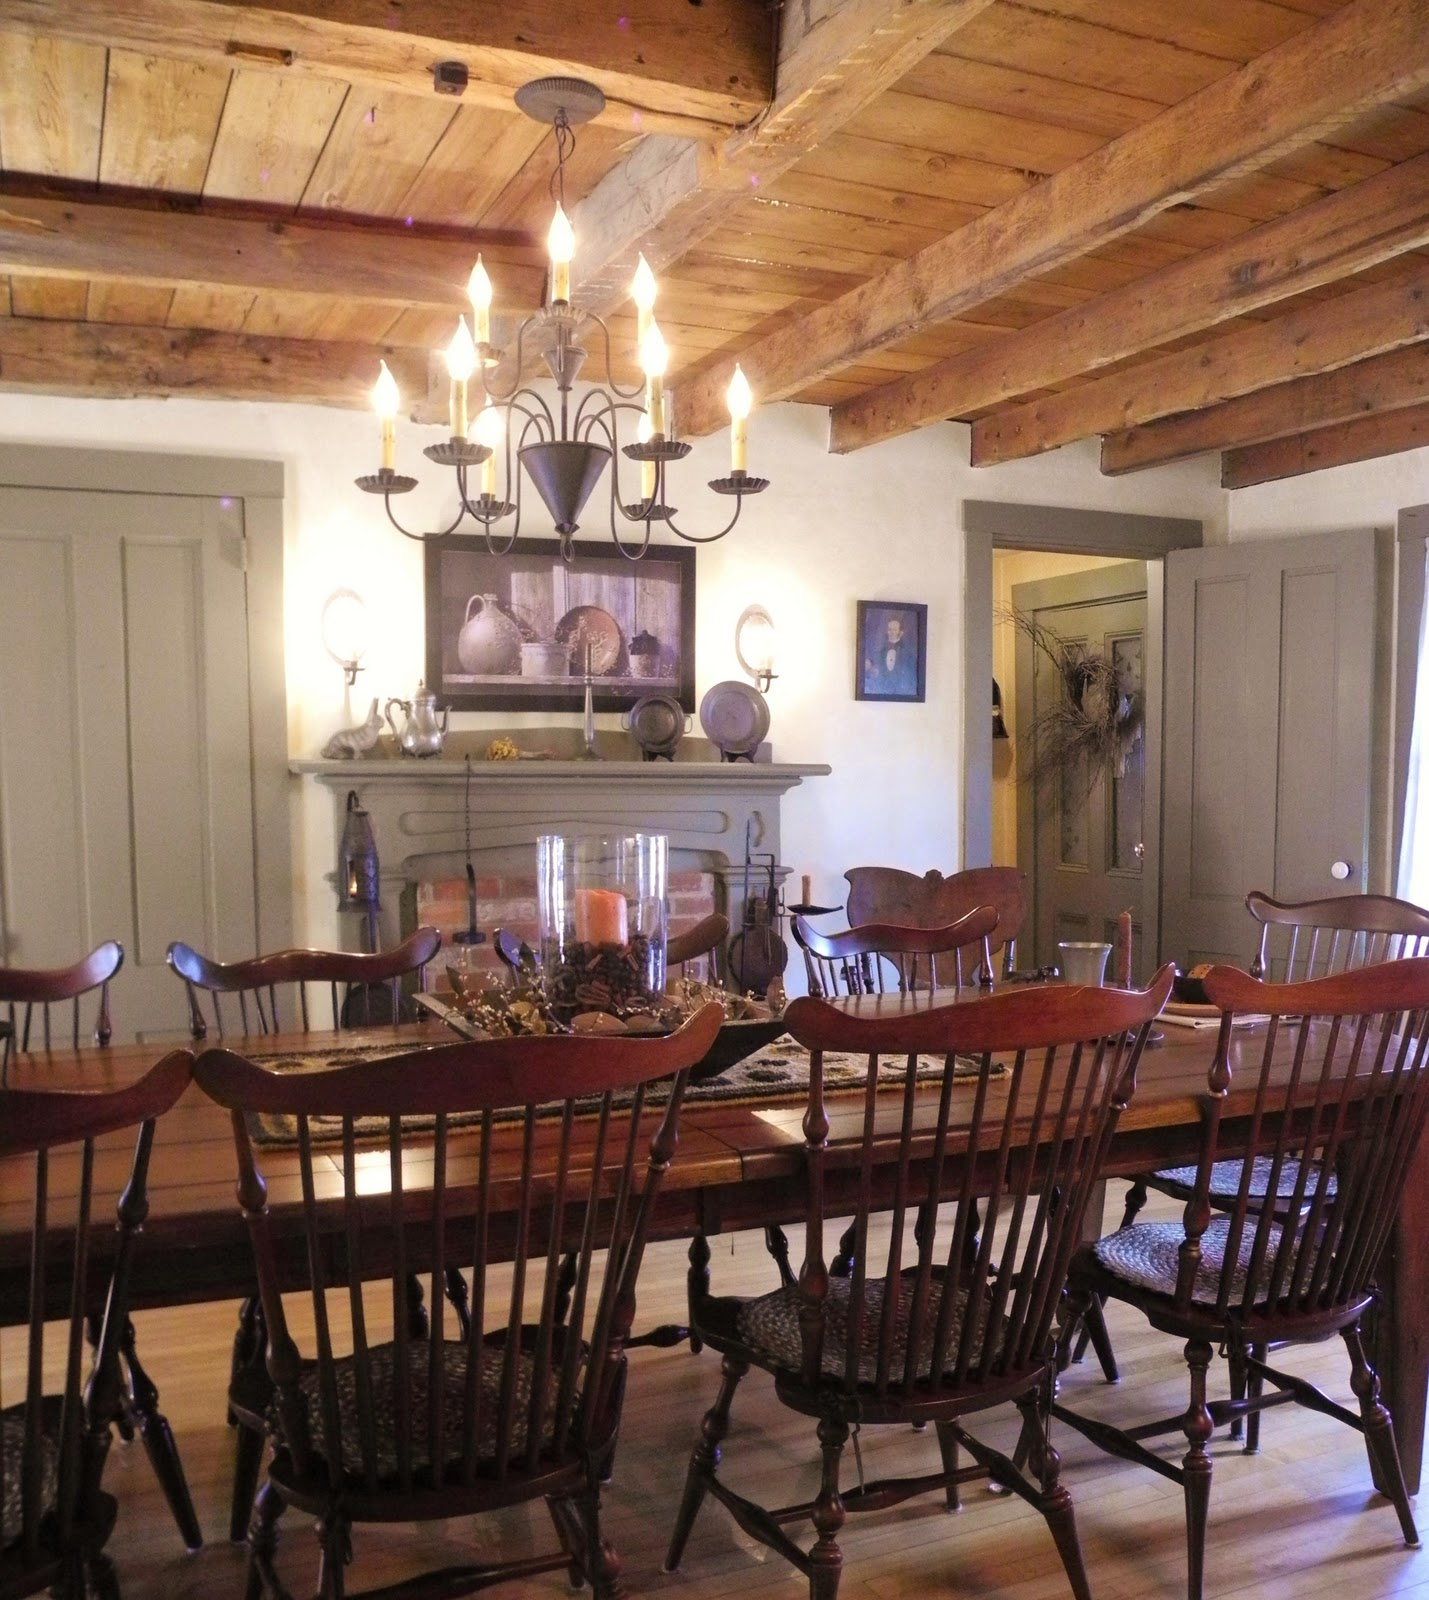 Colonial Dining Room: A Primitive Place & Country Journal Magazine: Spring 2012